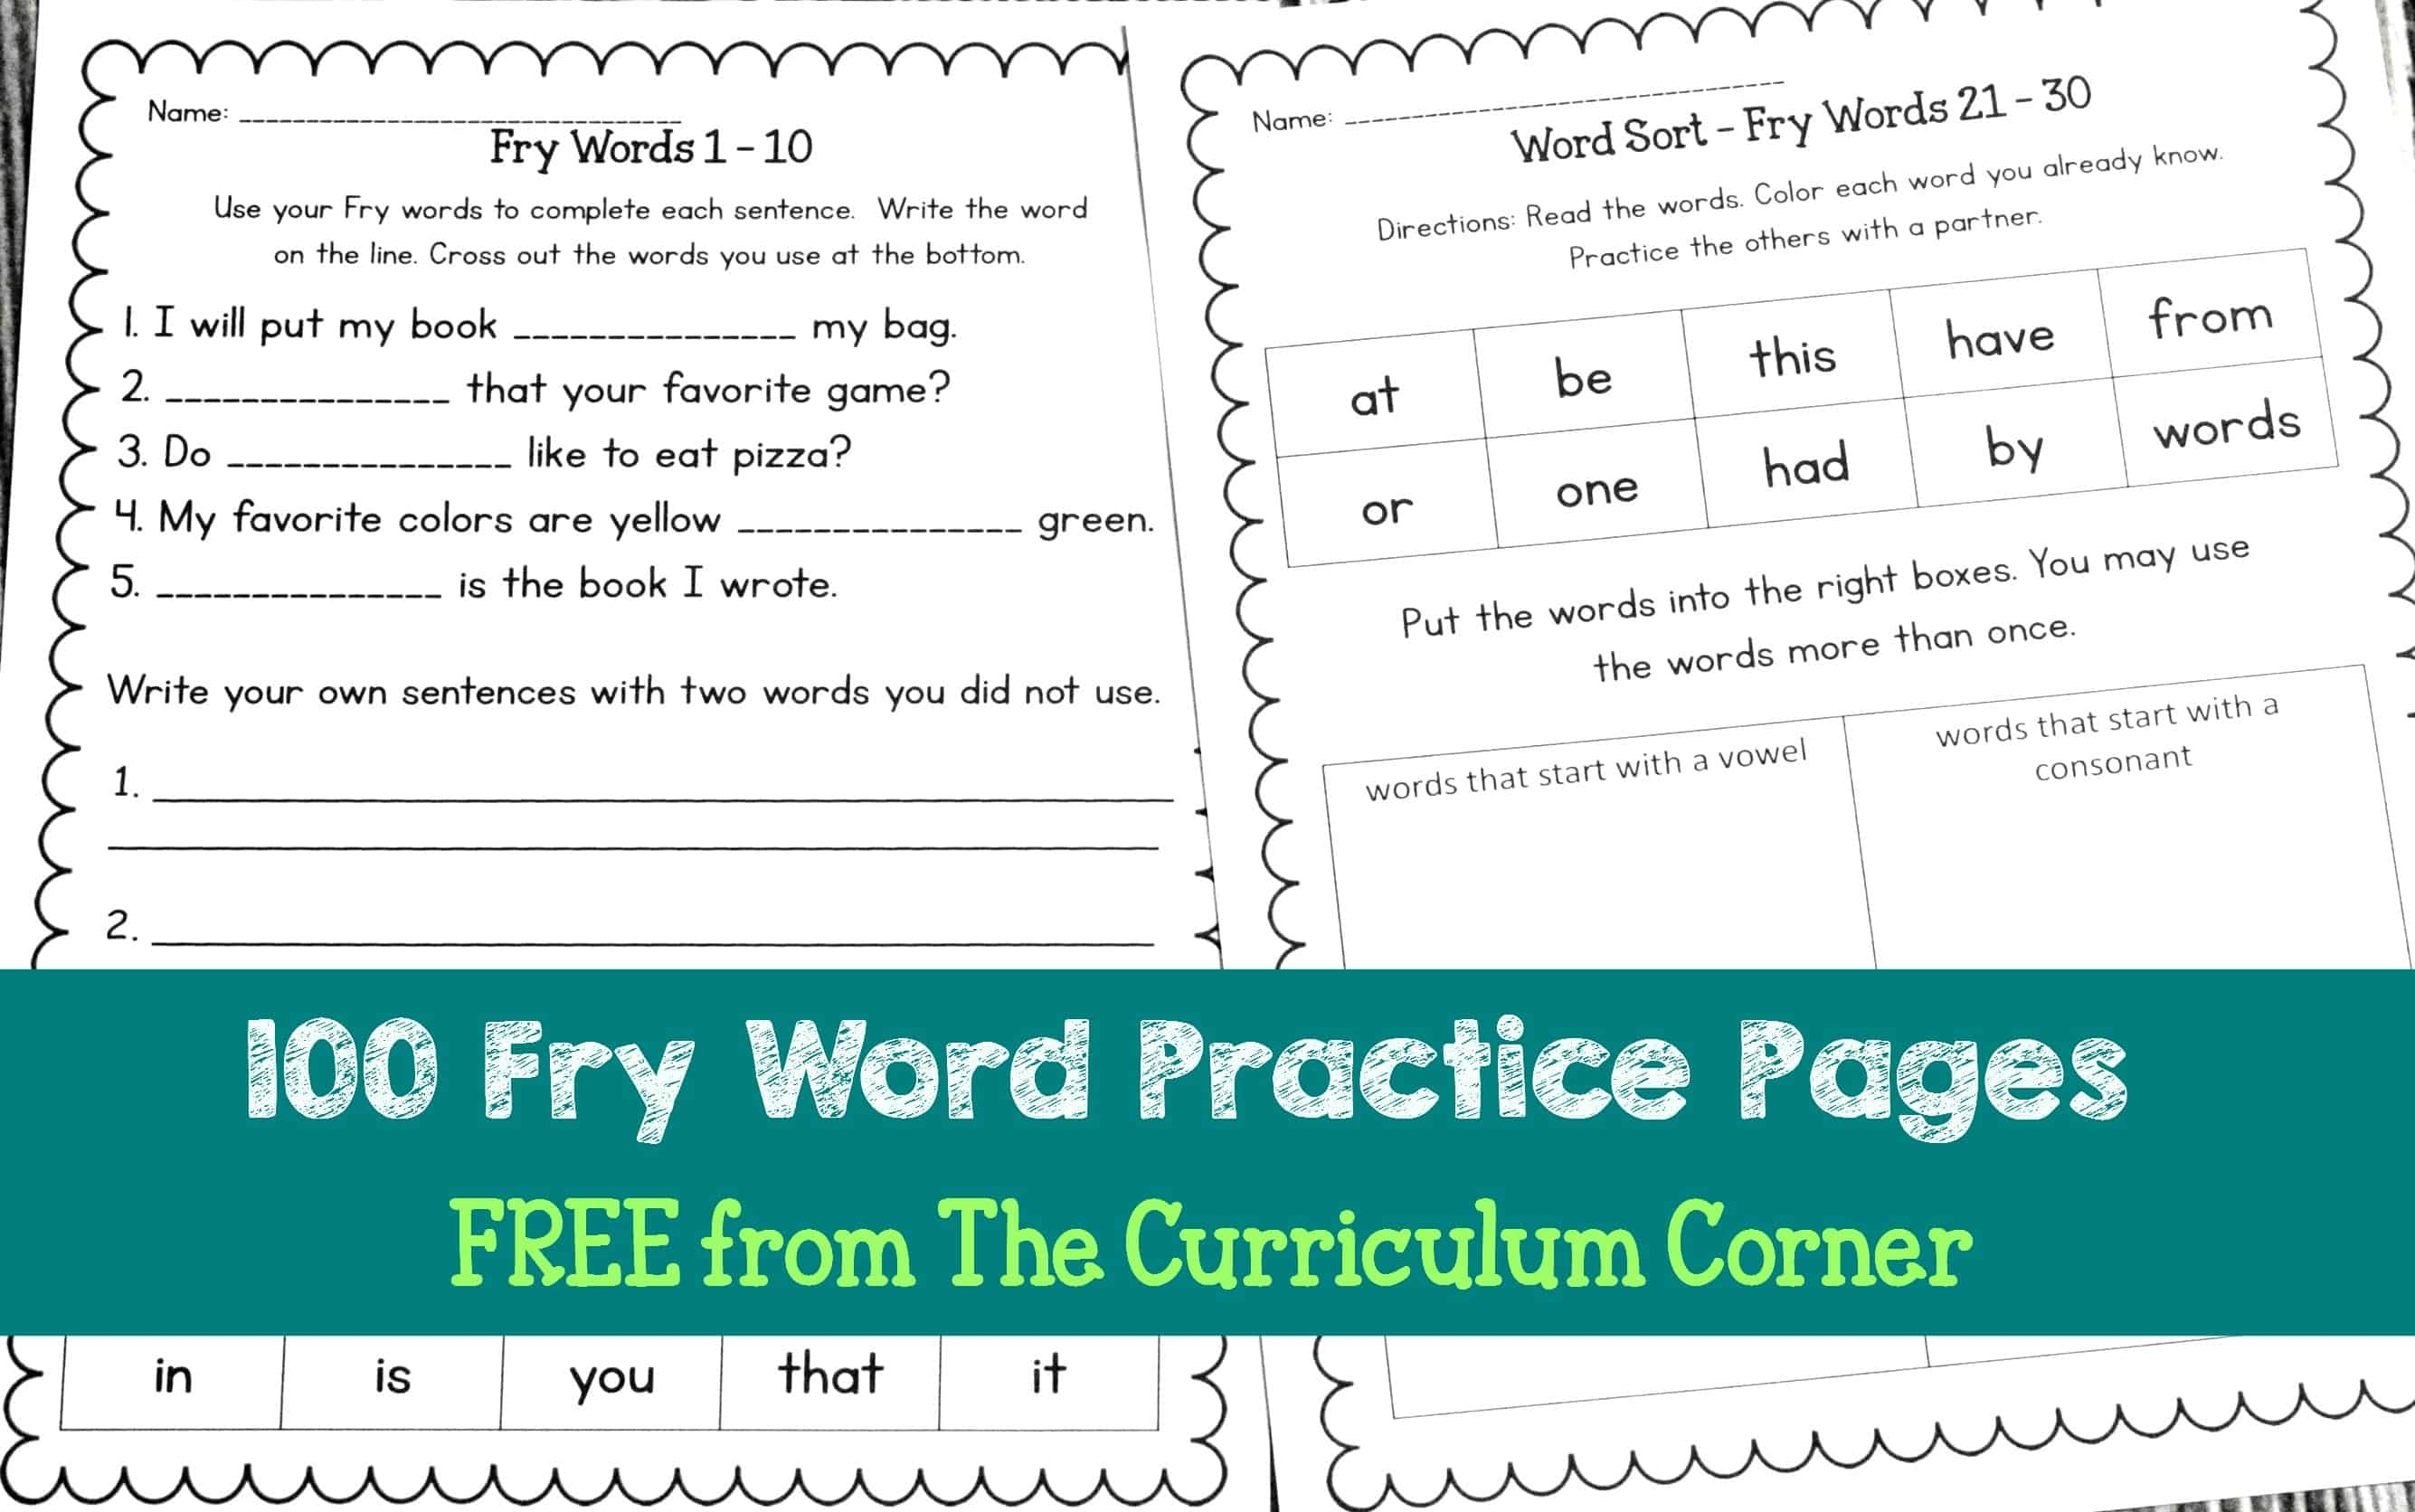 Fry Word Practice Pages